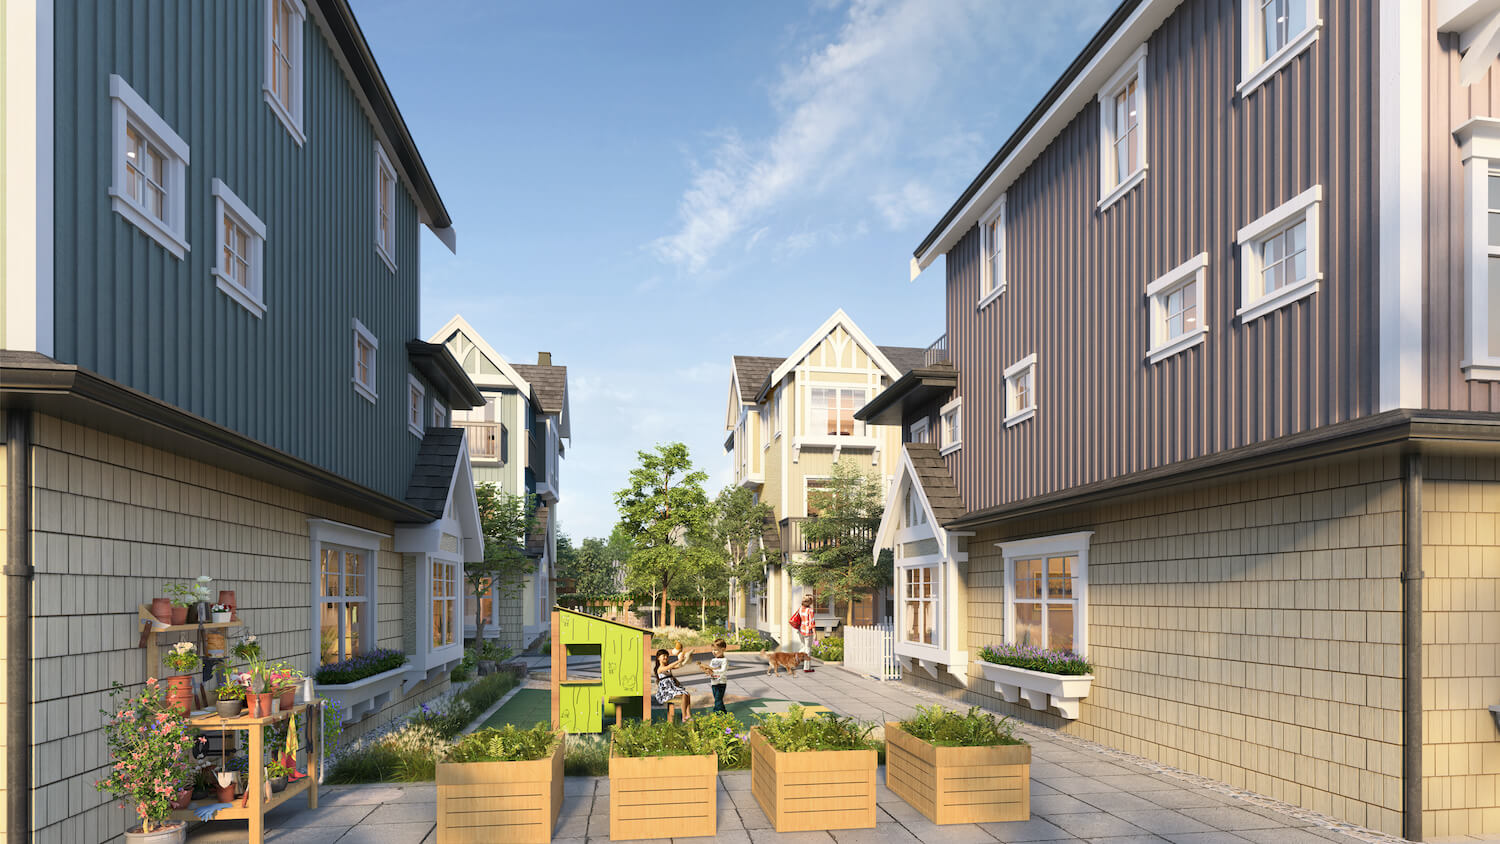 The Robinsons Courtyard Rendering